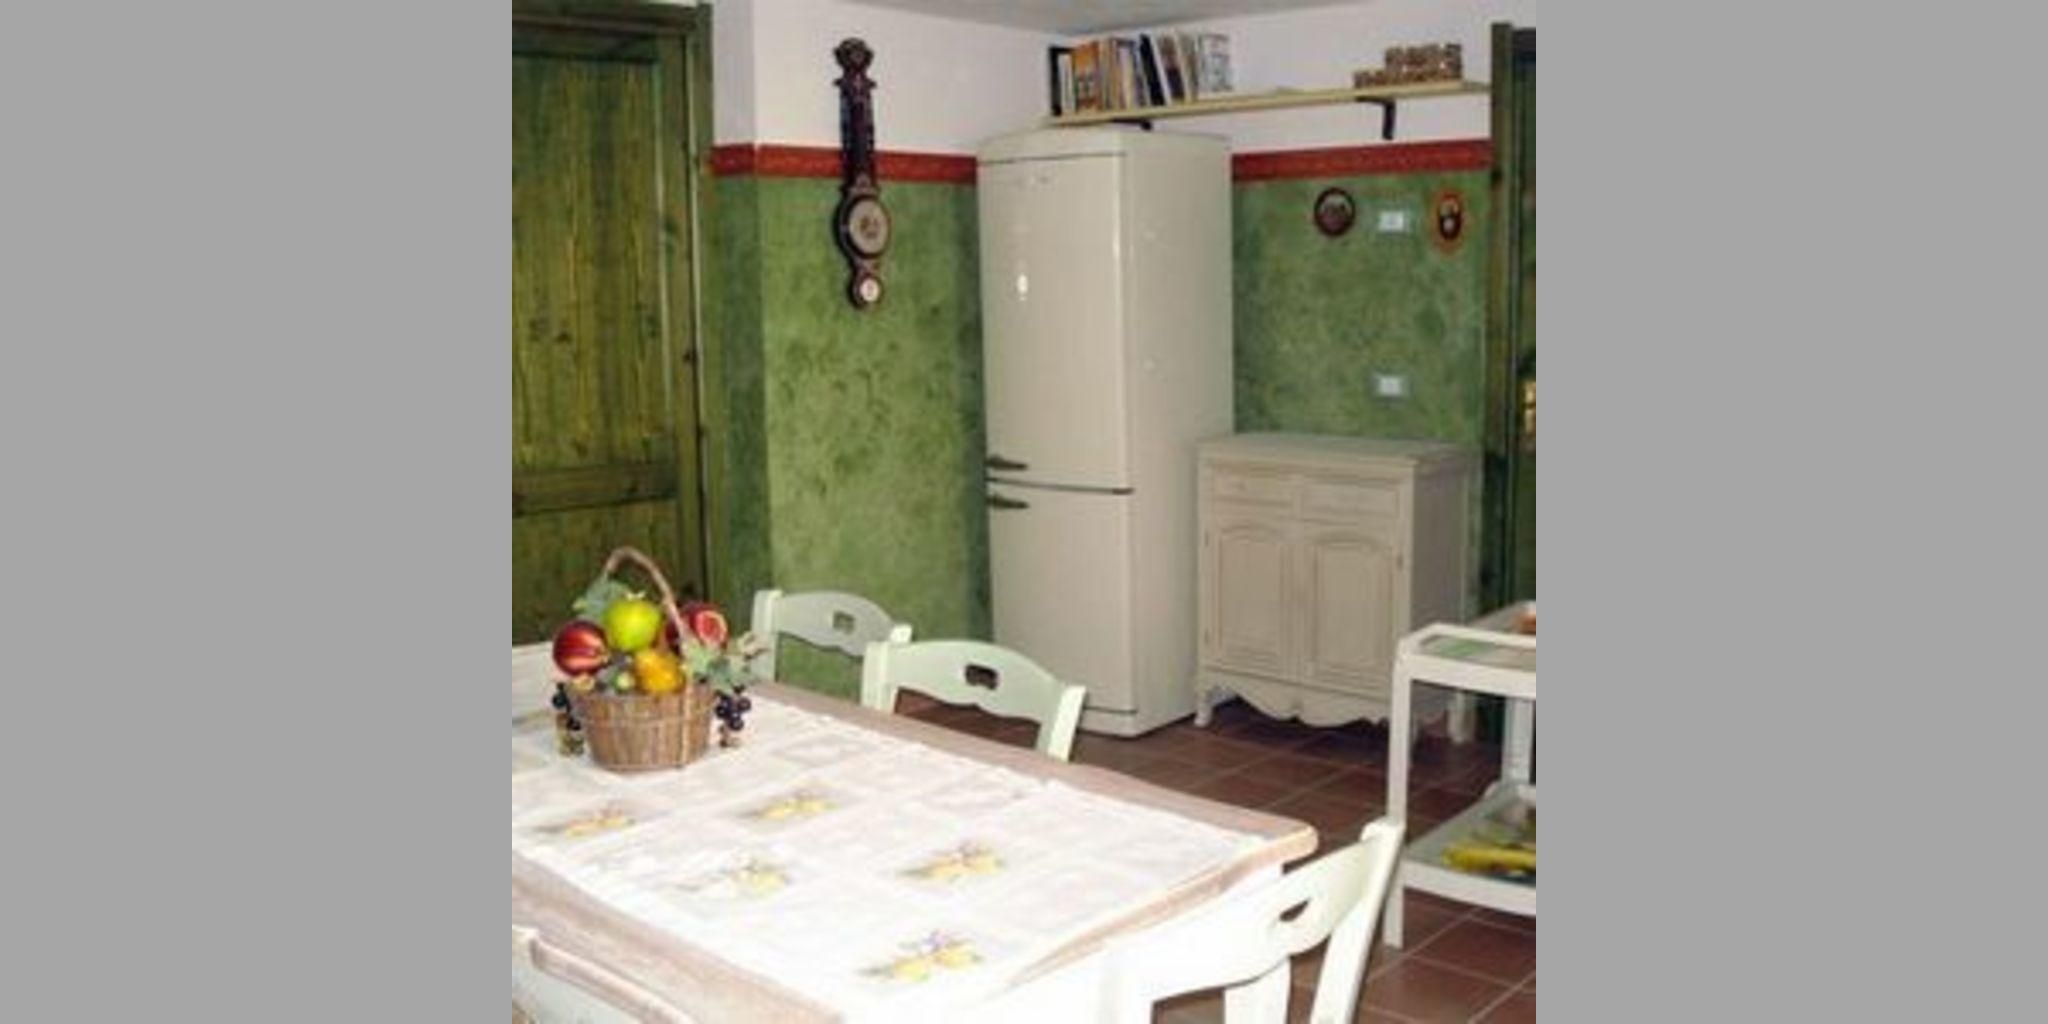 Bed & Breakfast Valledoria - B&B Valledoria